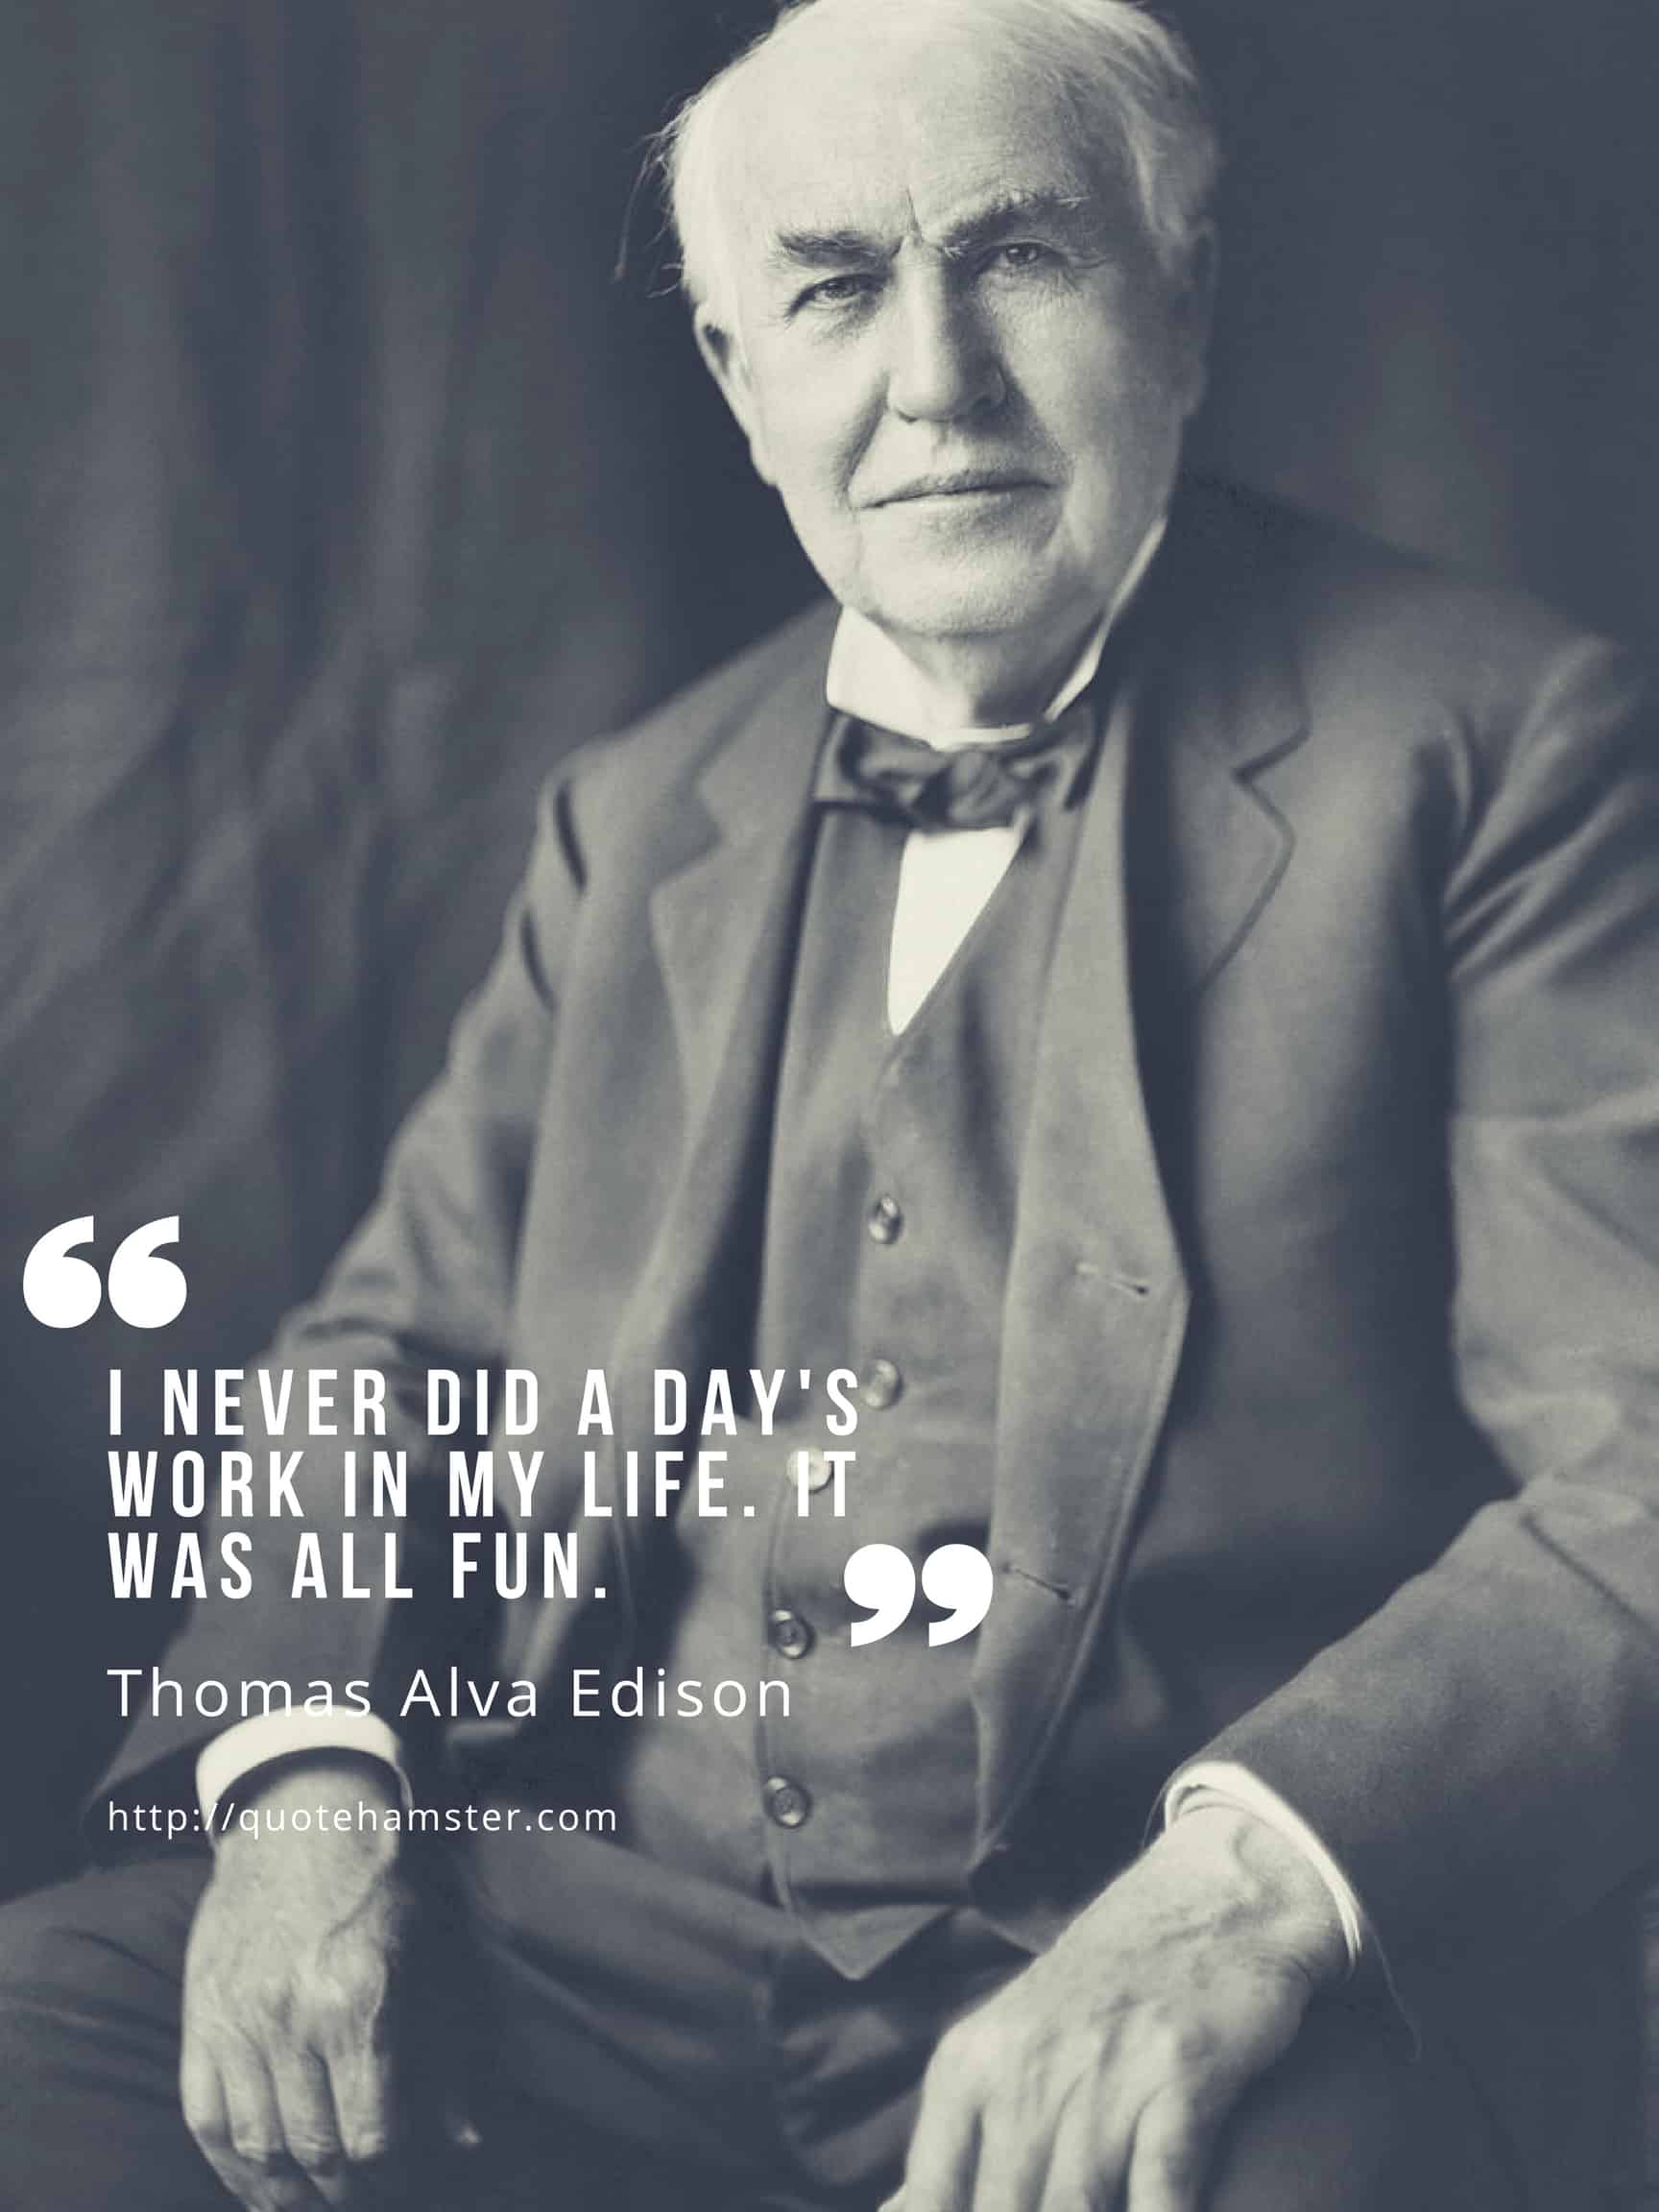 Never did a day's work - Edison quote